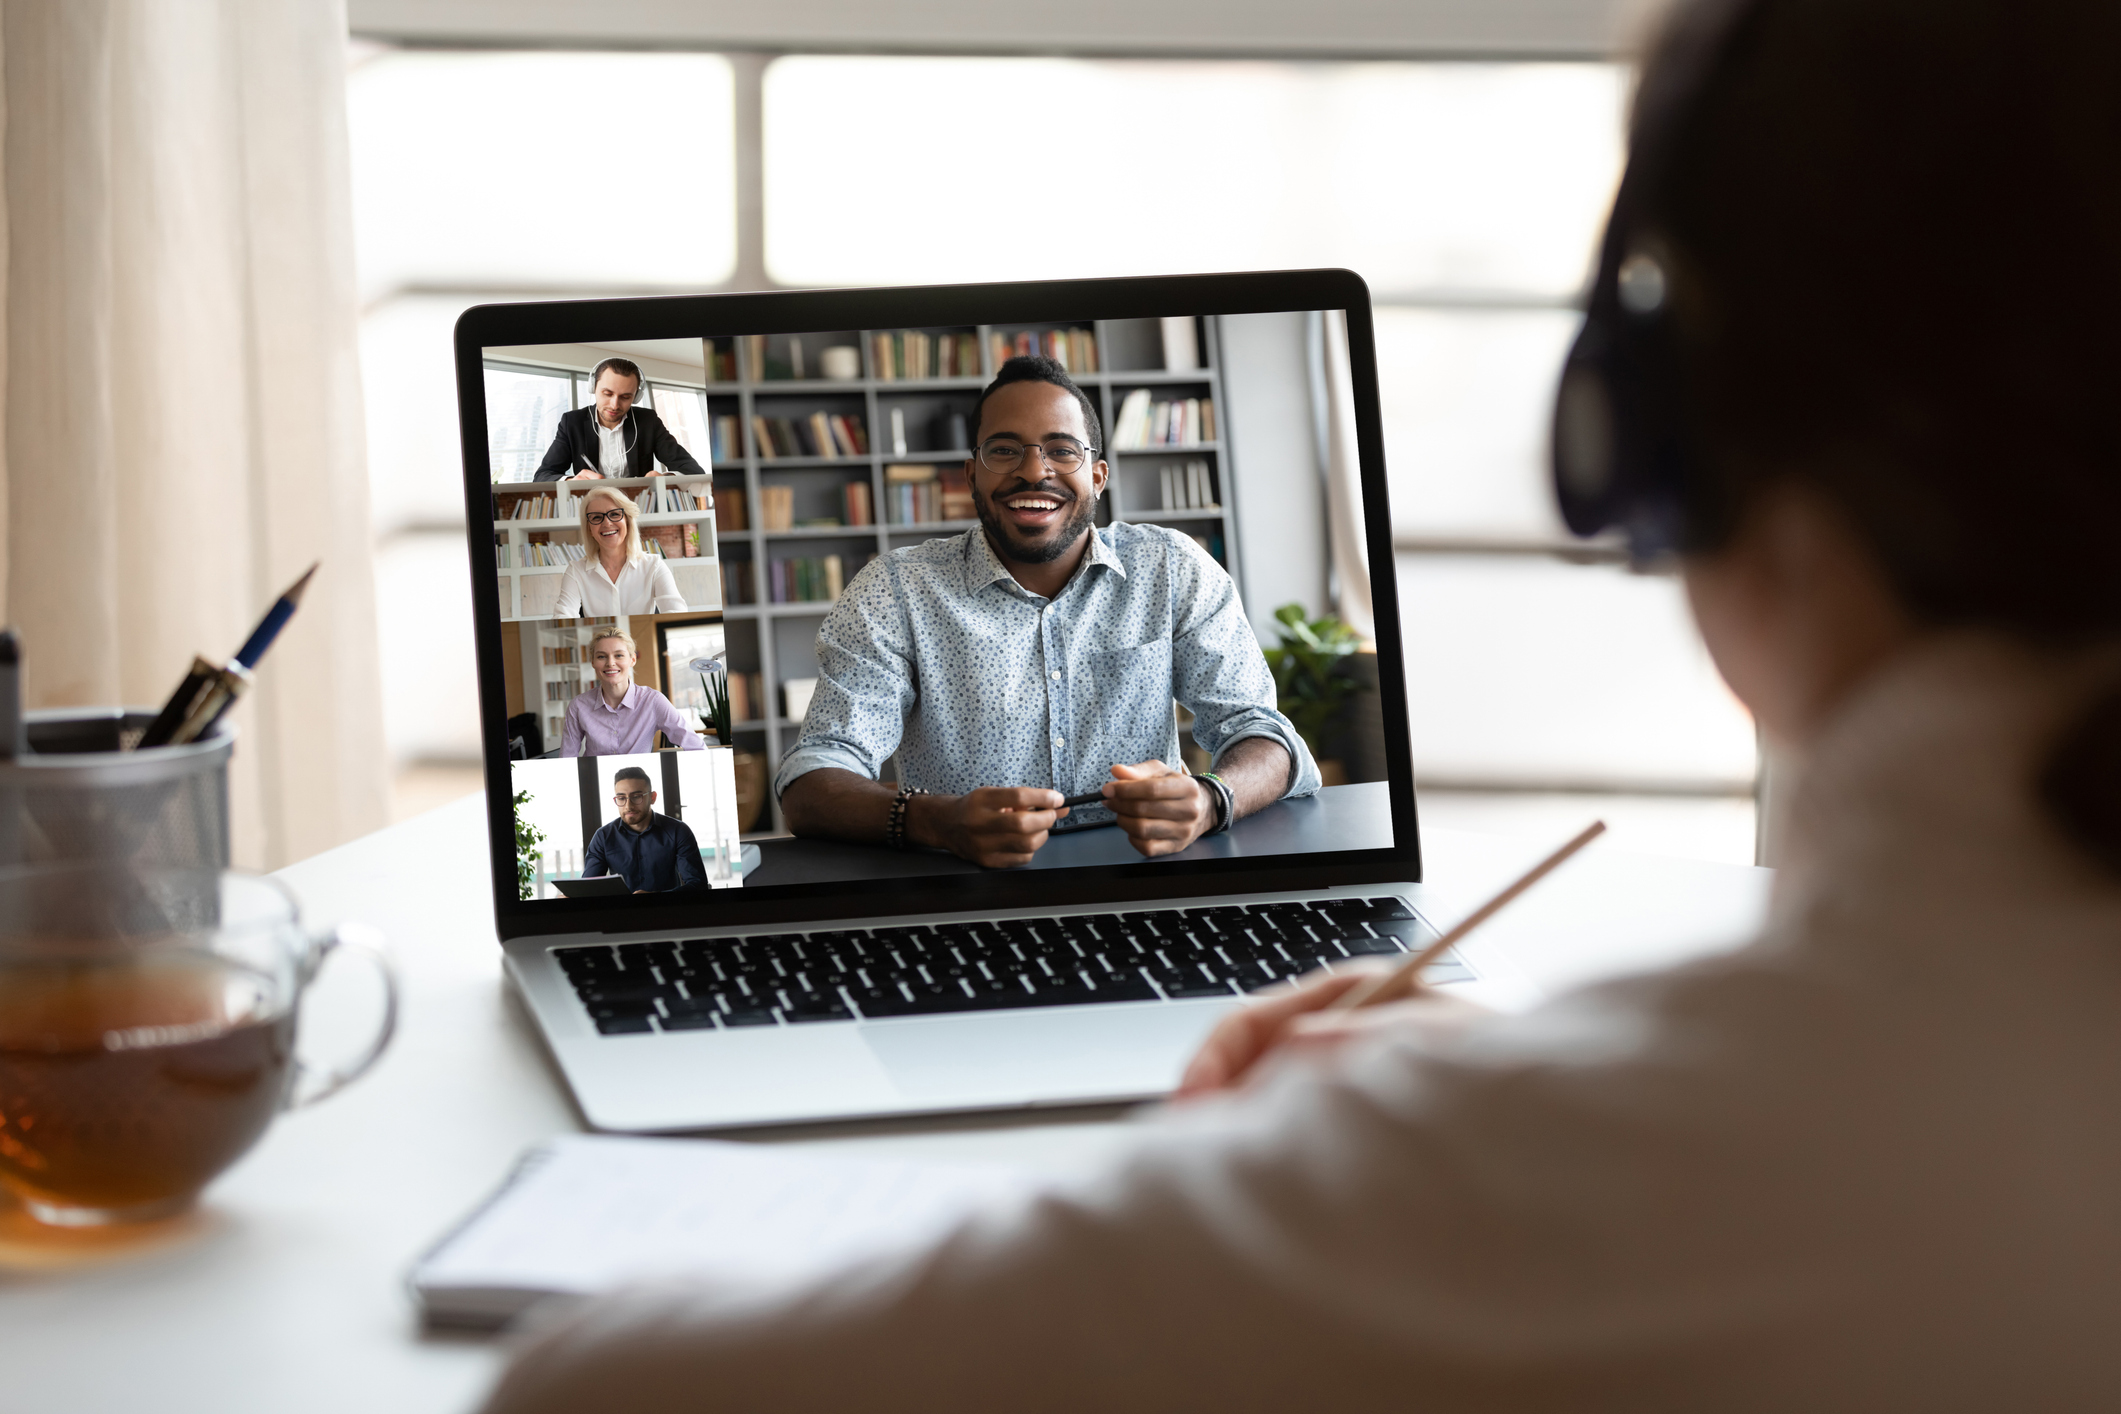 Video Conference Call Image